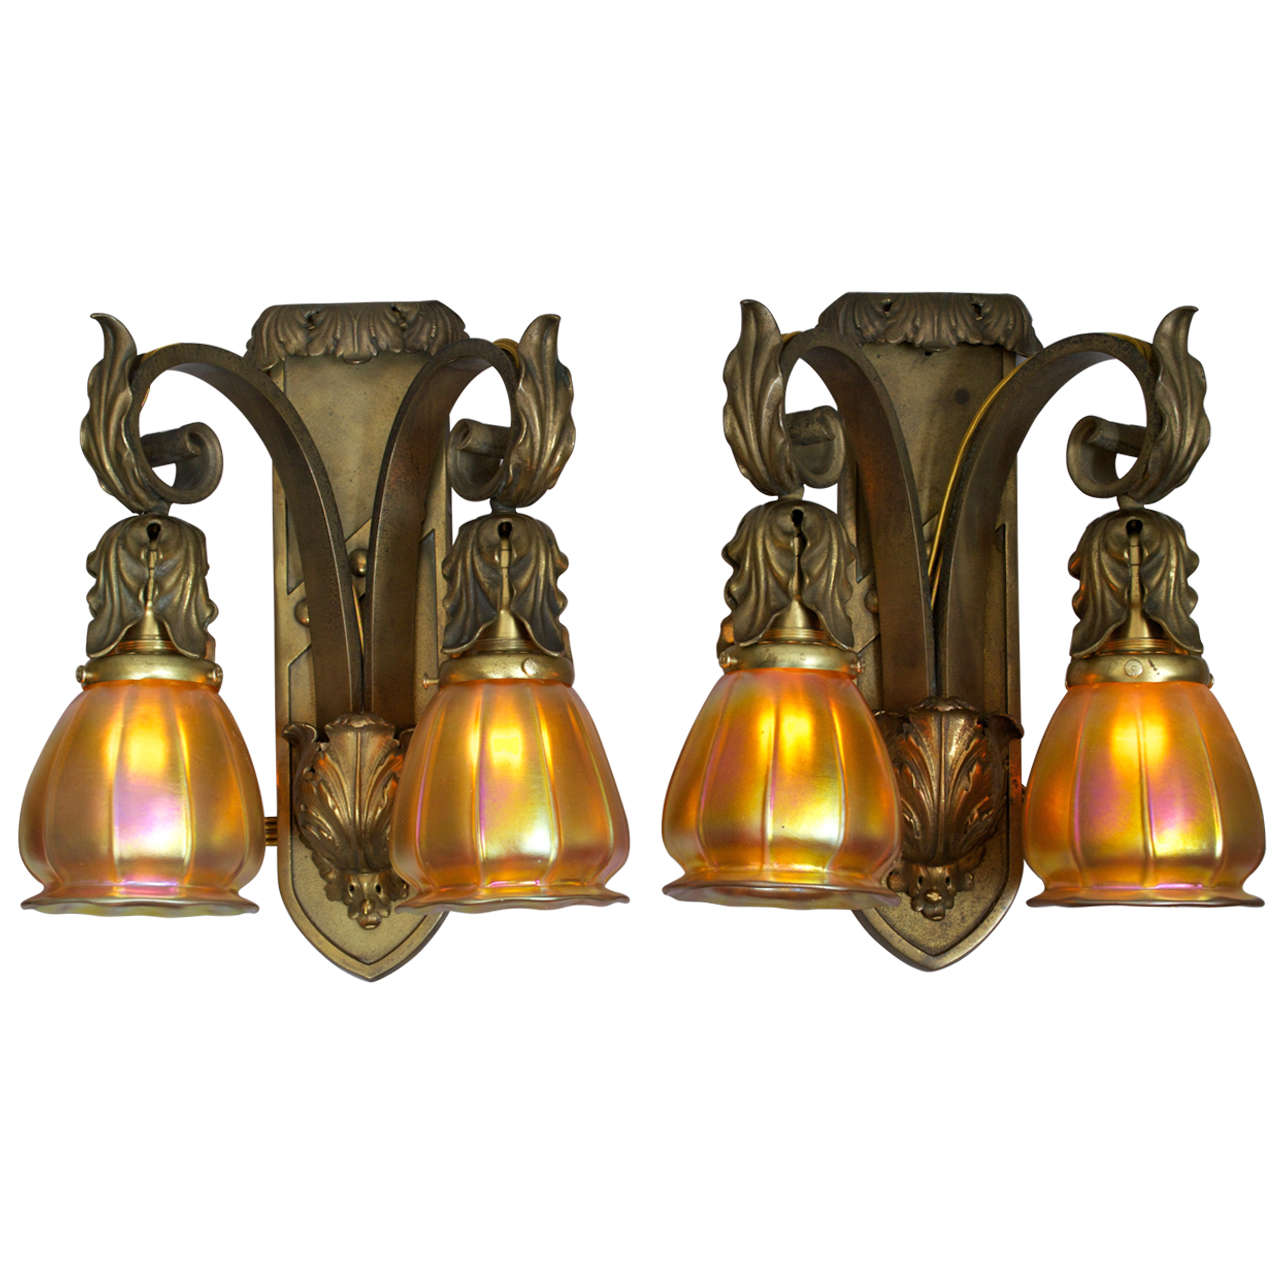 Wall Sconces Hand Blown Glass : Pair of Gilt Bronze Two Arm Sconces with Hand Blown Steuben Glass at 1stdibs